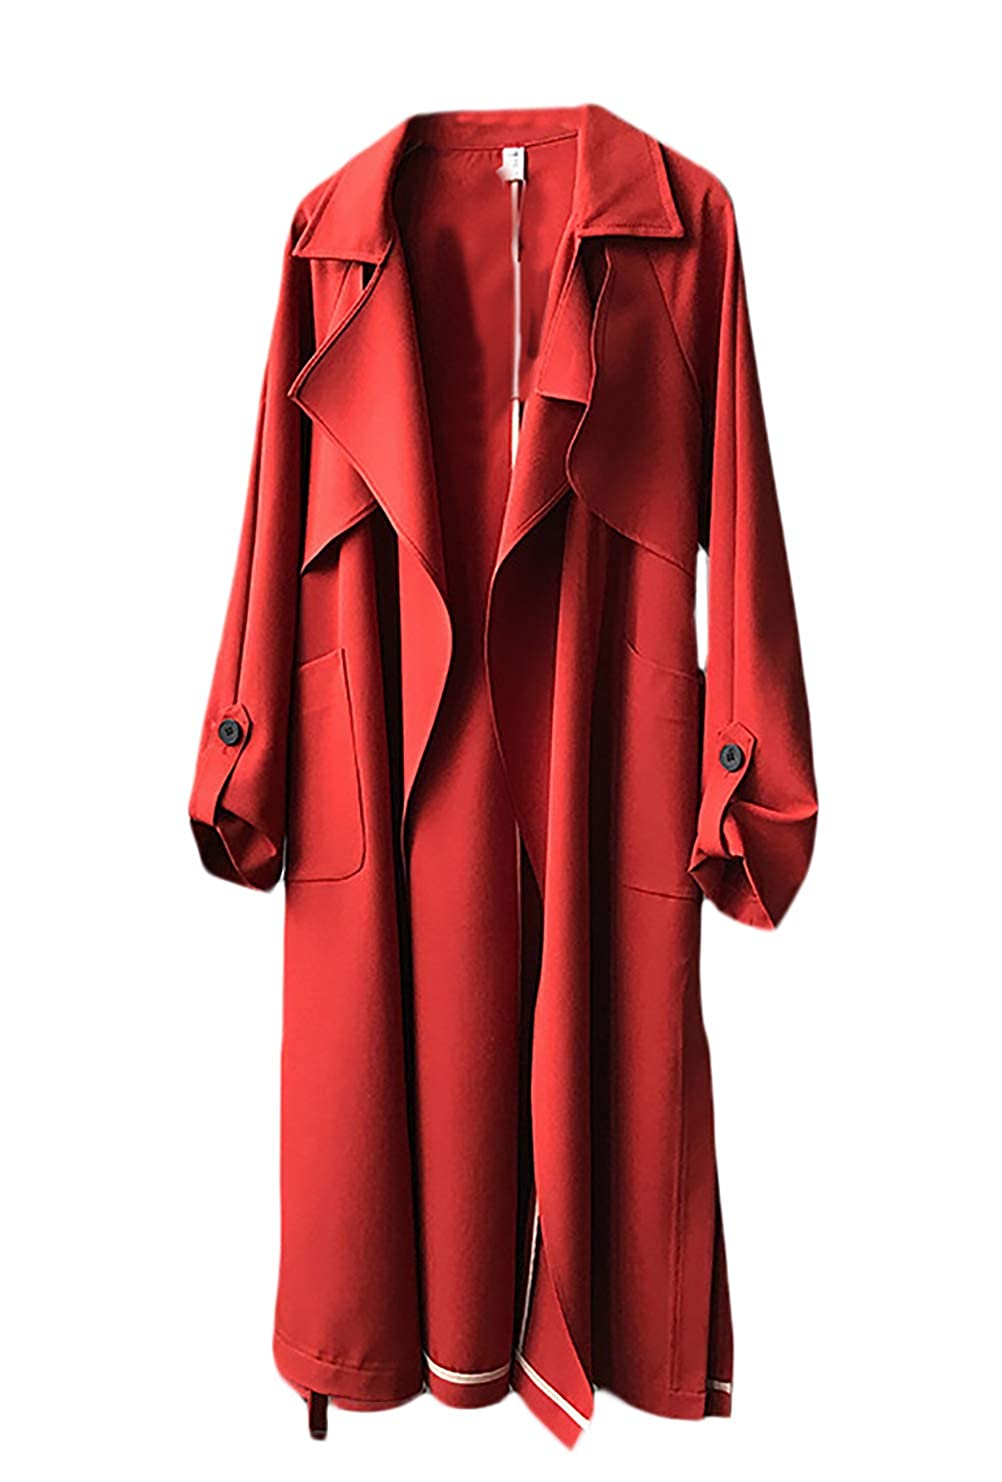 Femme Longues Manche Uni Couleur Trench Outwear Bolawoo Mode Unie lJFKT1c